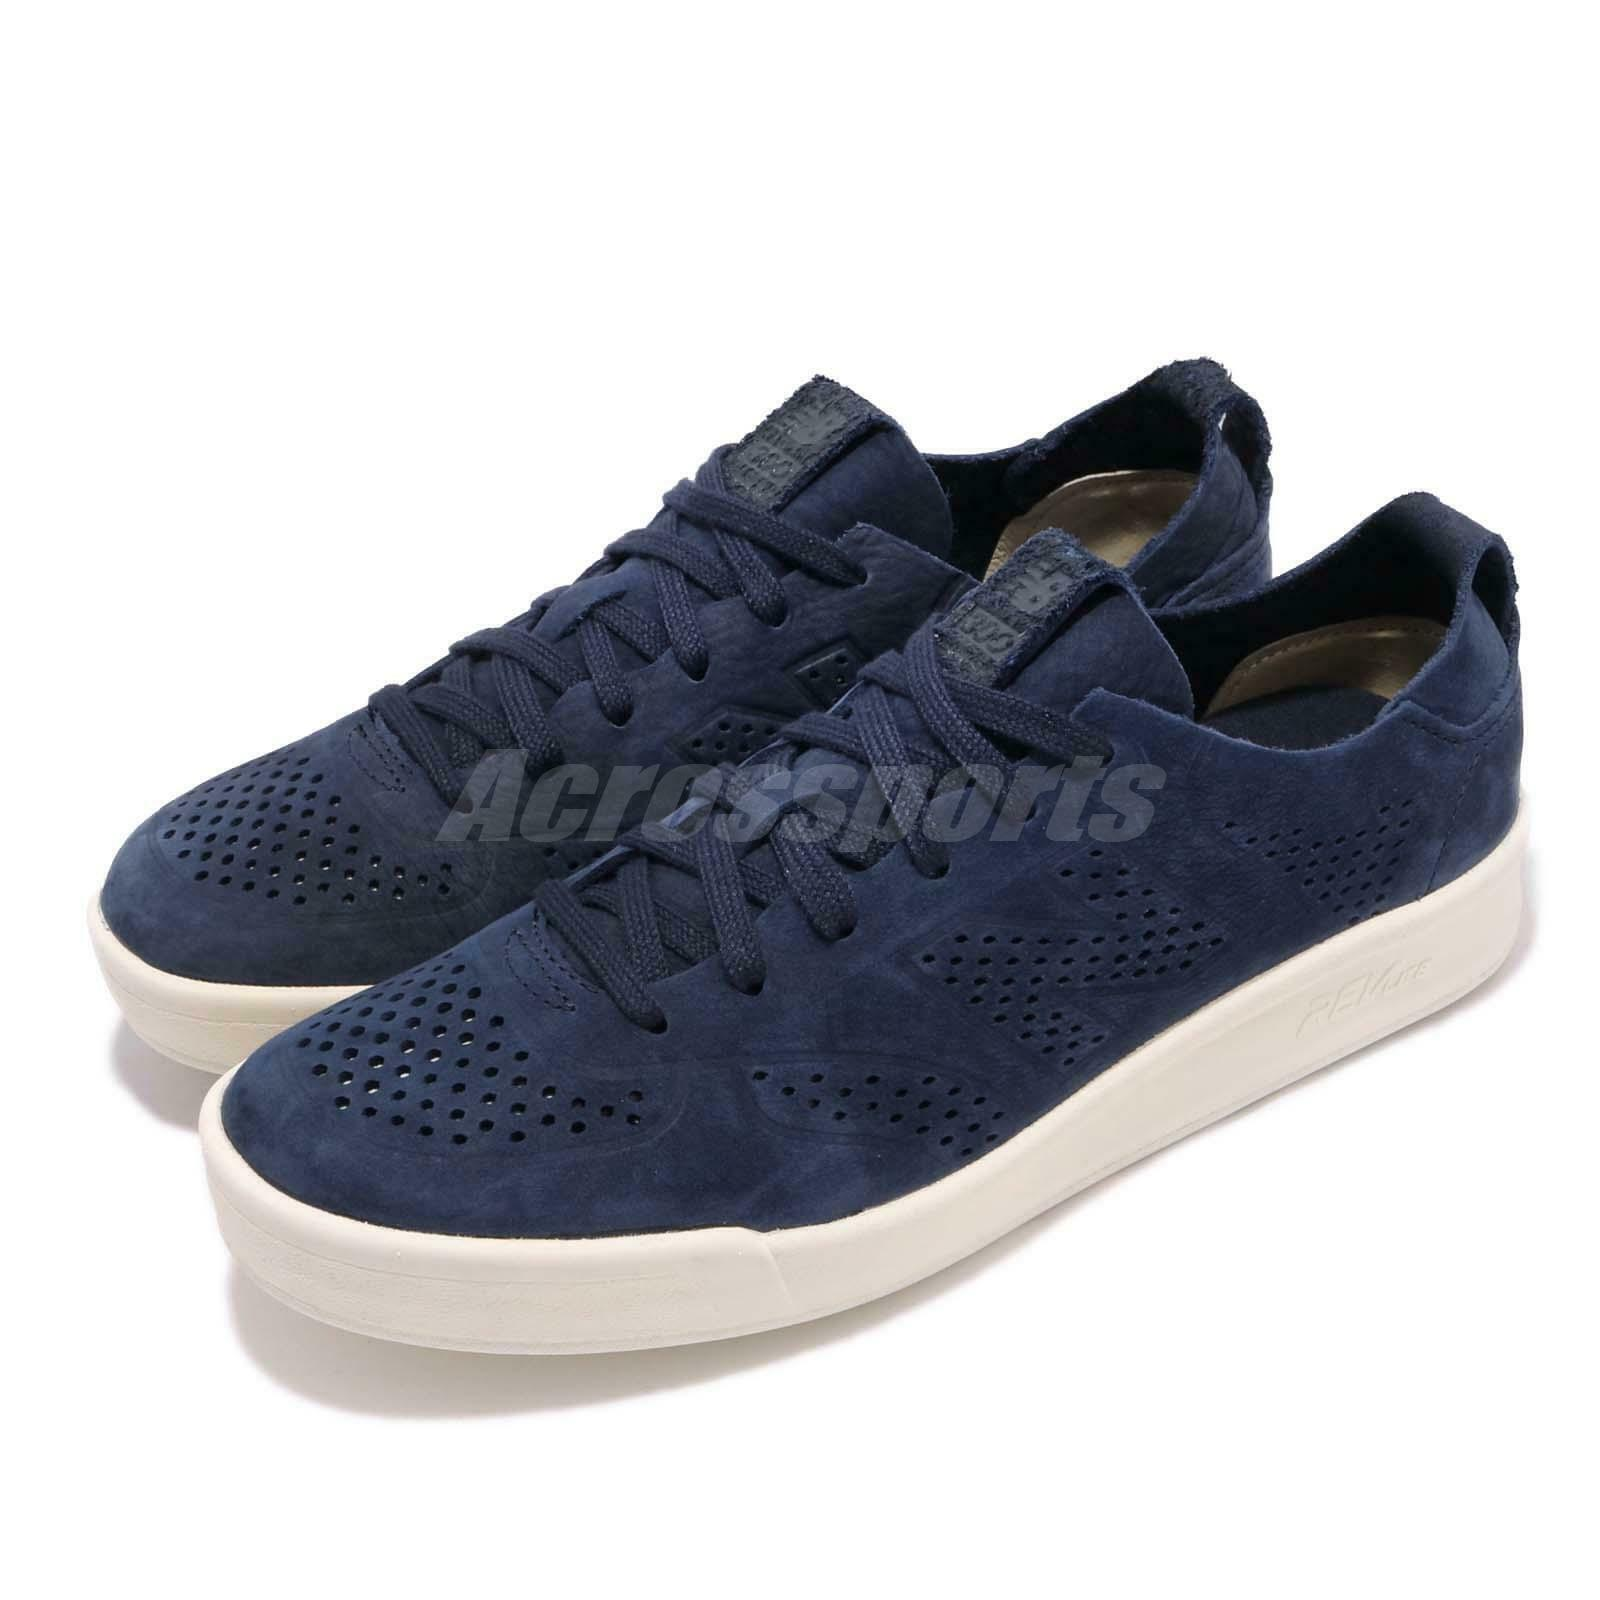 New Balance CRT300DY D Navy Ivory Men Casual Lifestyle shoes Sneakers CRT300DYD